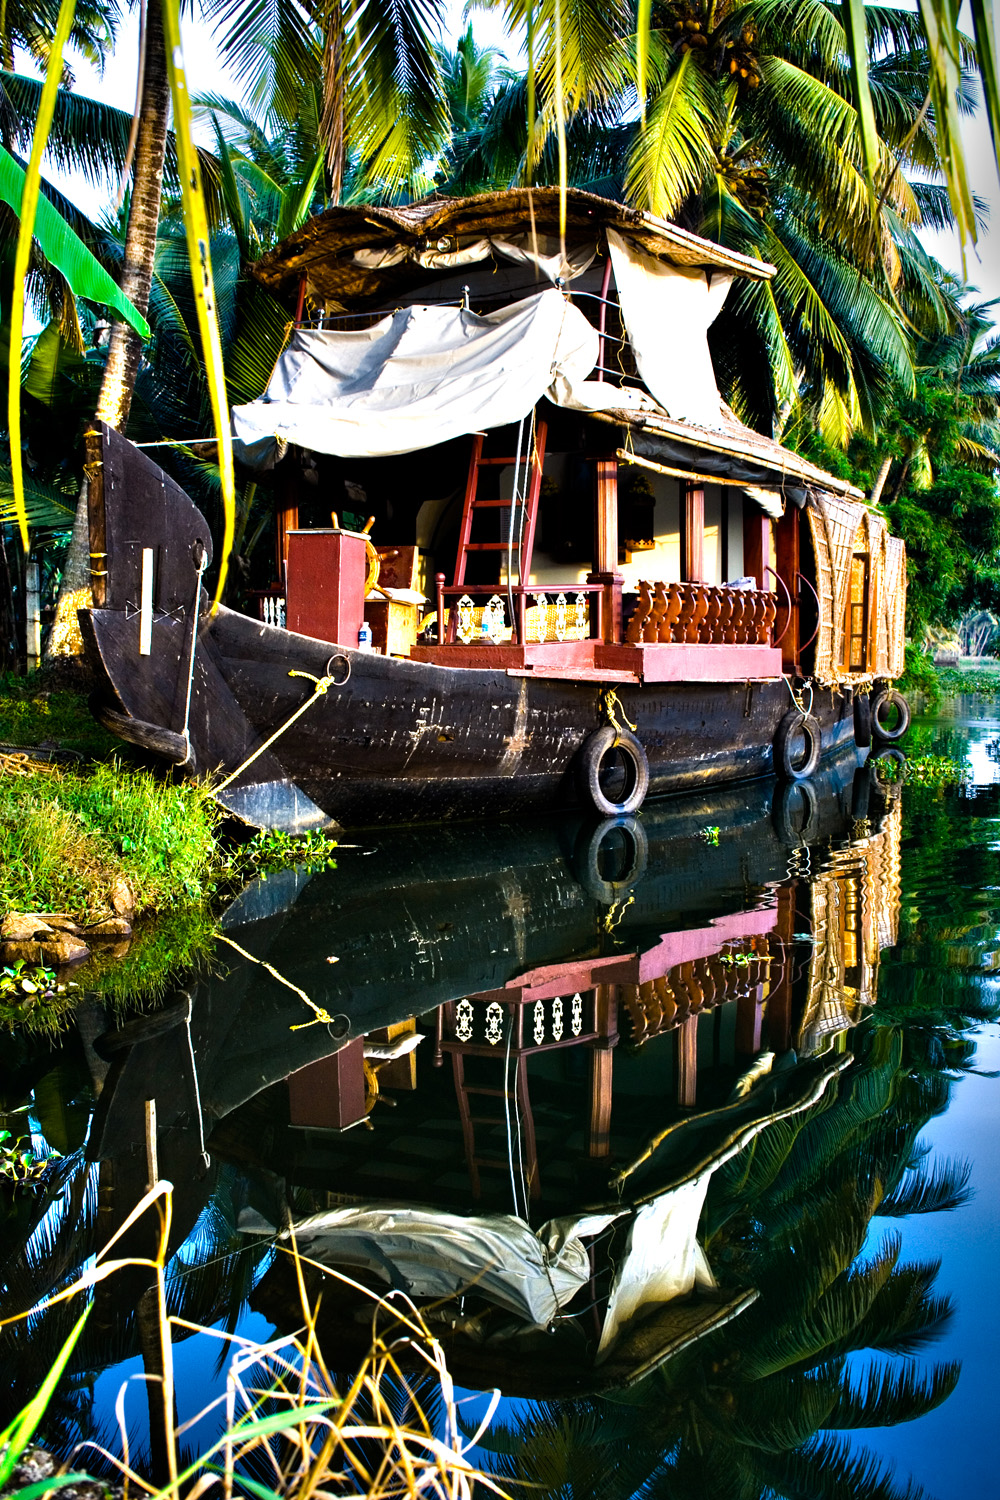 Kerala houseboat, India (Andy Webb)